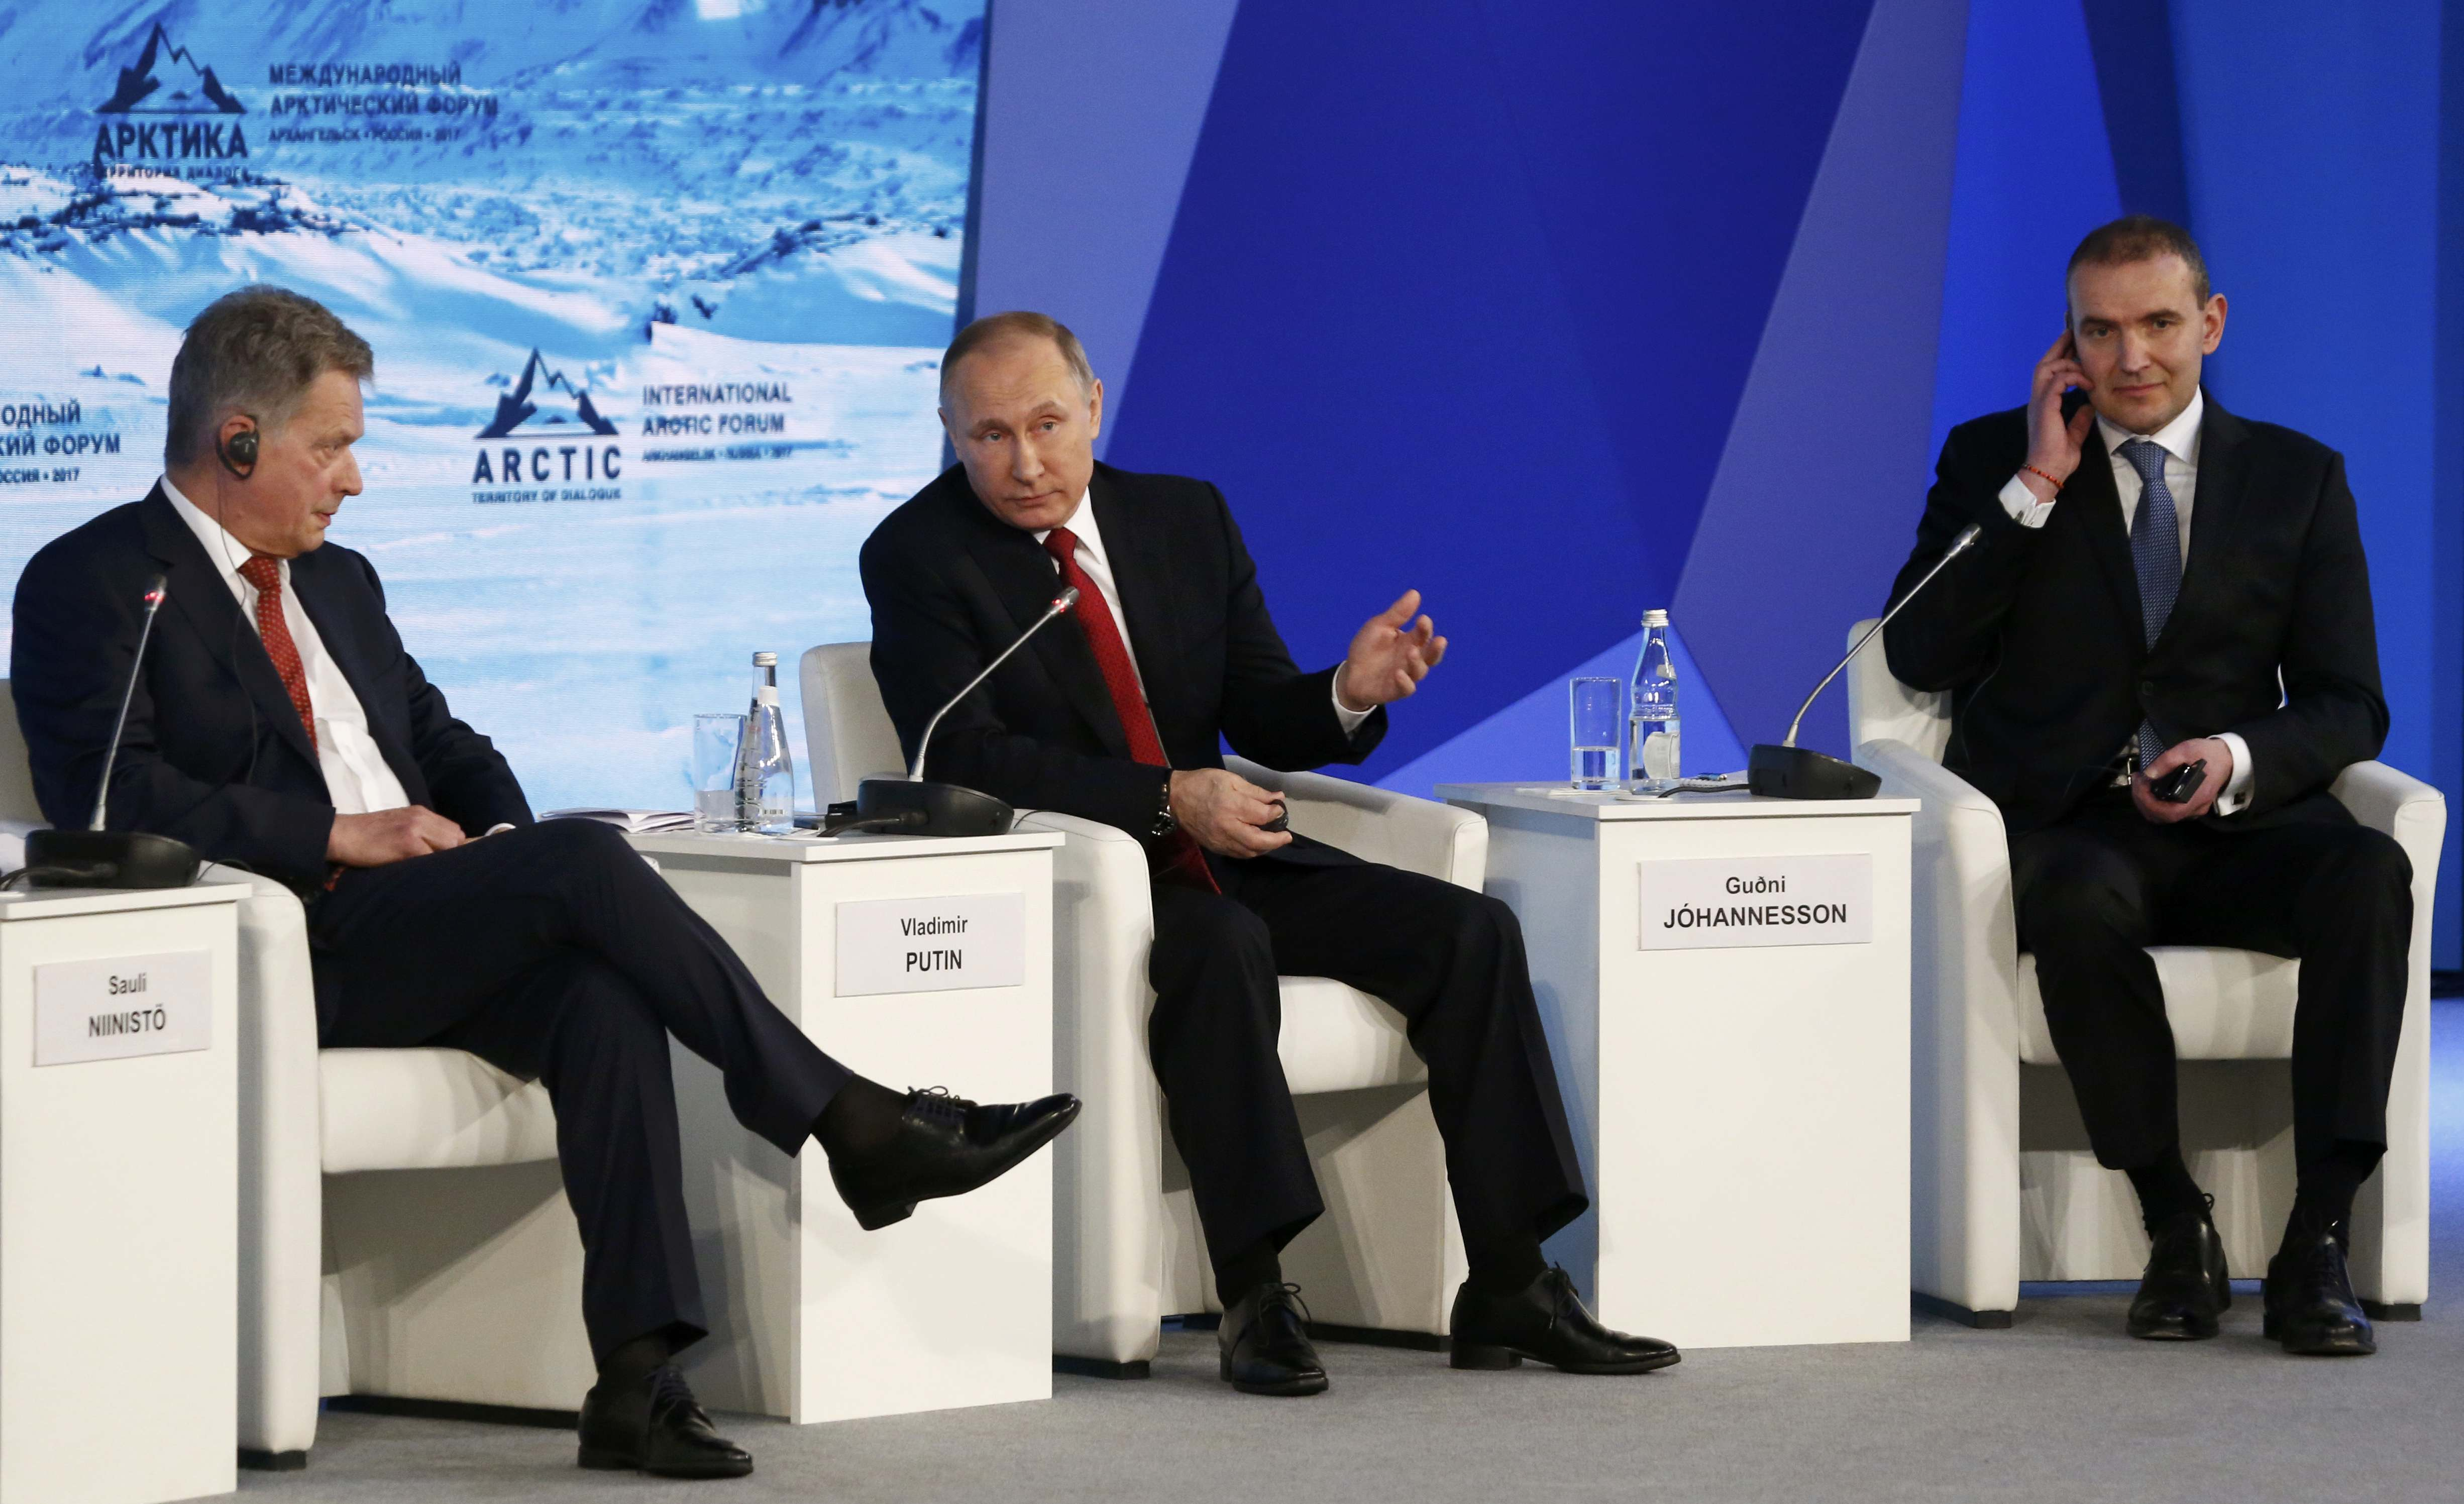 The Arctic remains a bright point in the sometimes bumpy relations between Russia and the Nordic states